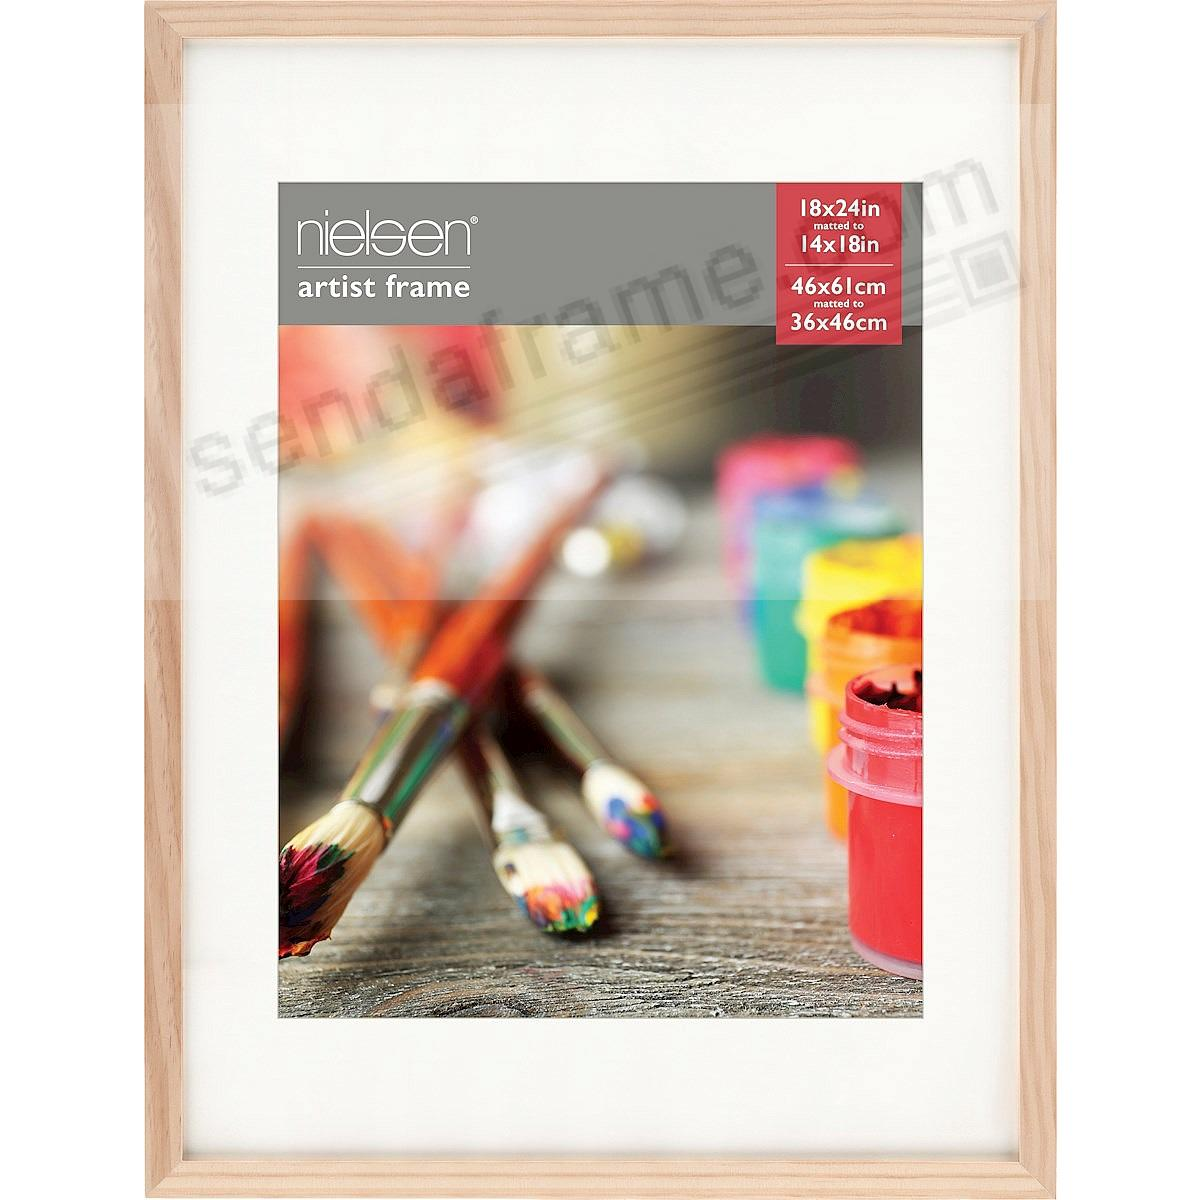 Ash Natural GALLERY-CANVAS DEPTH matted wood frame 18x24/14x18 by Nielsen-Bainbridge®